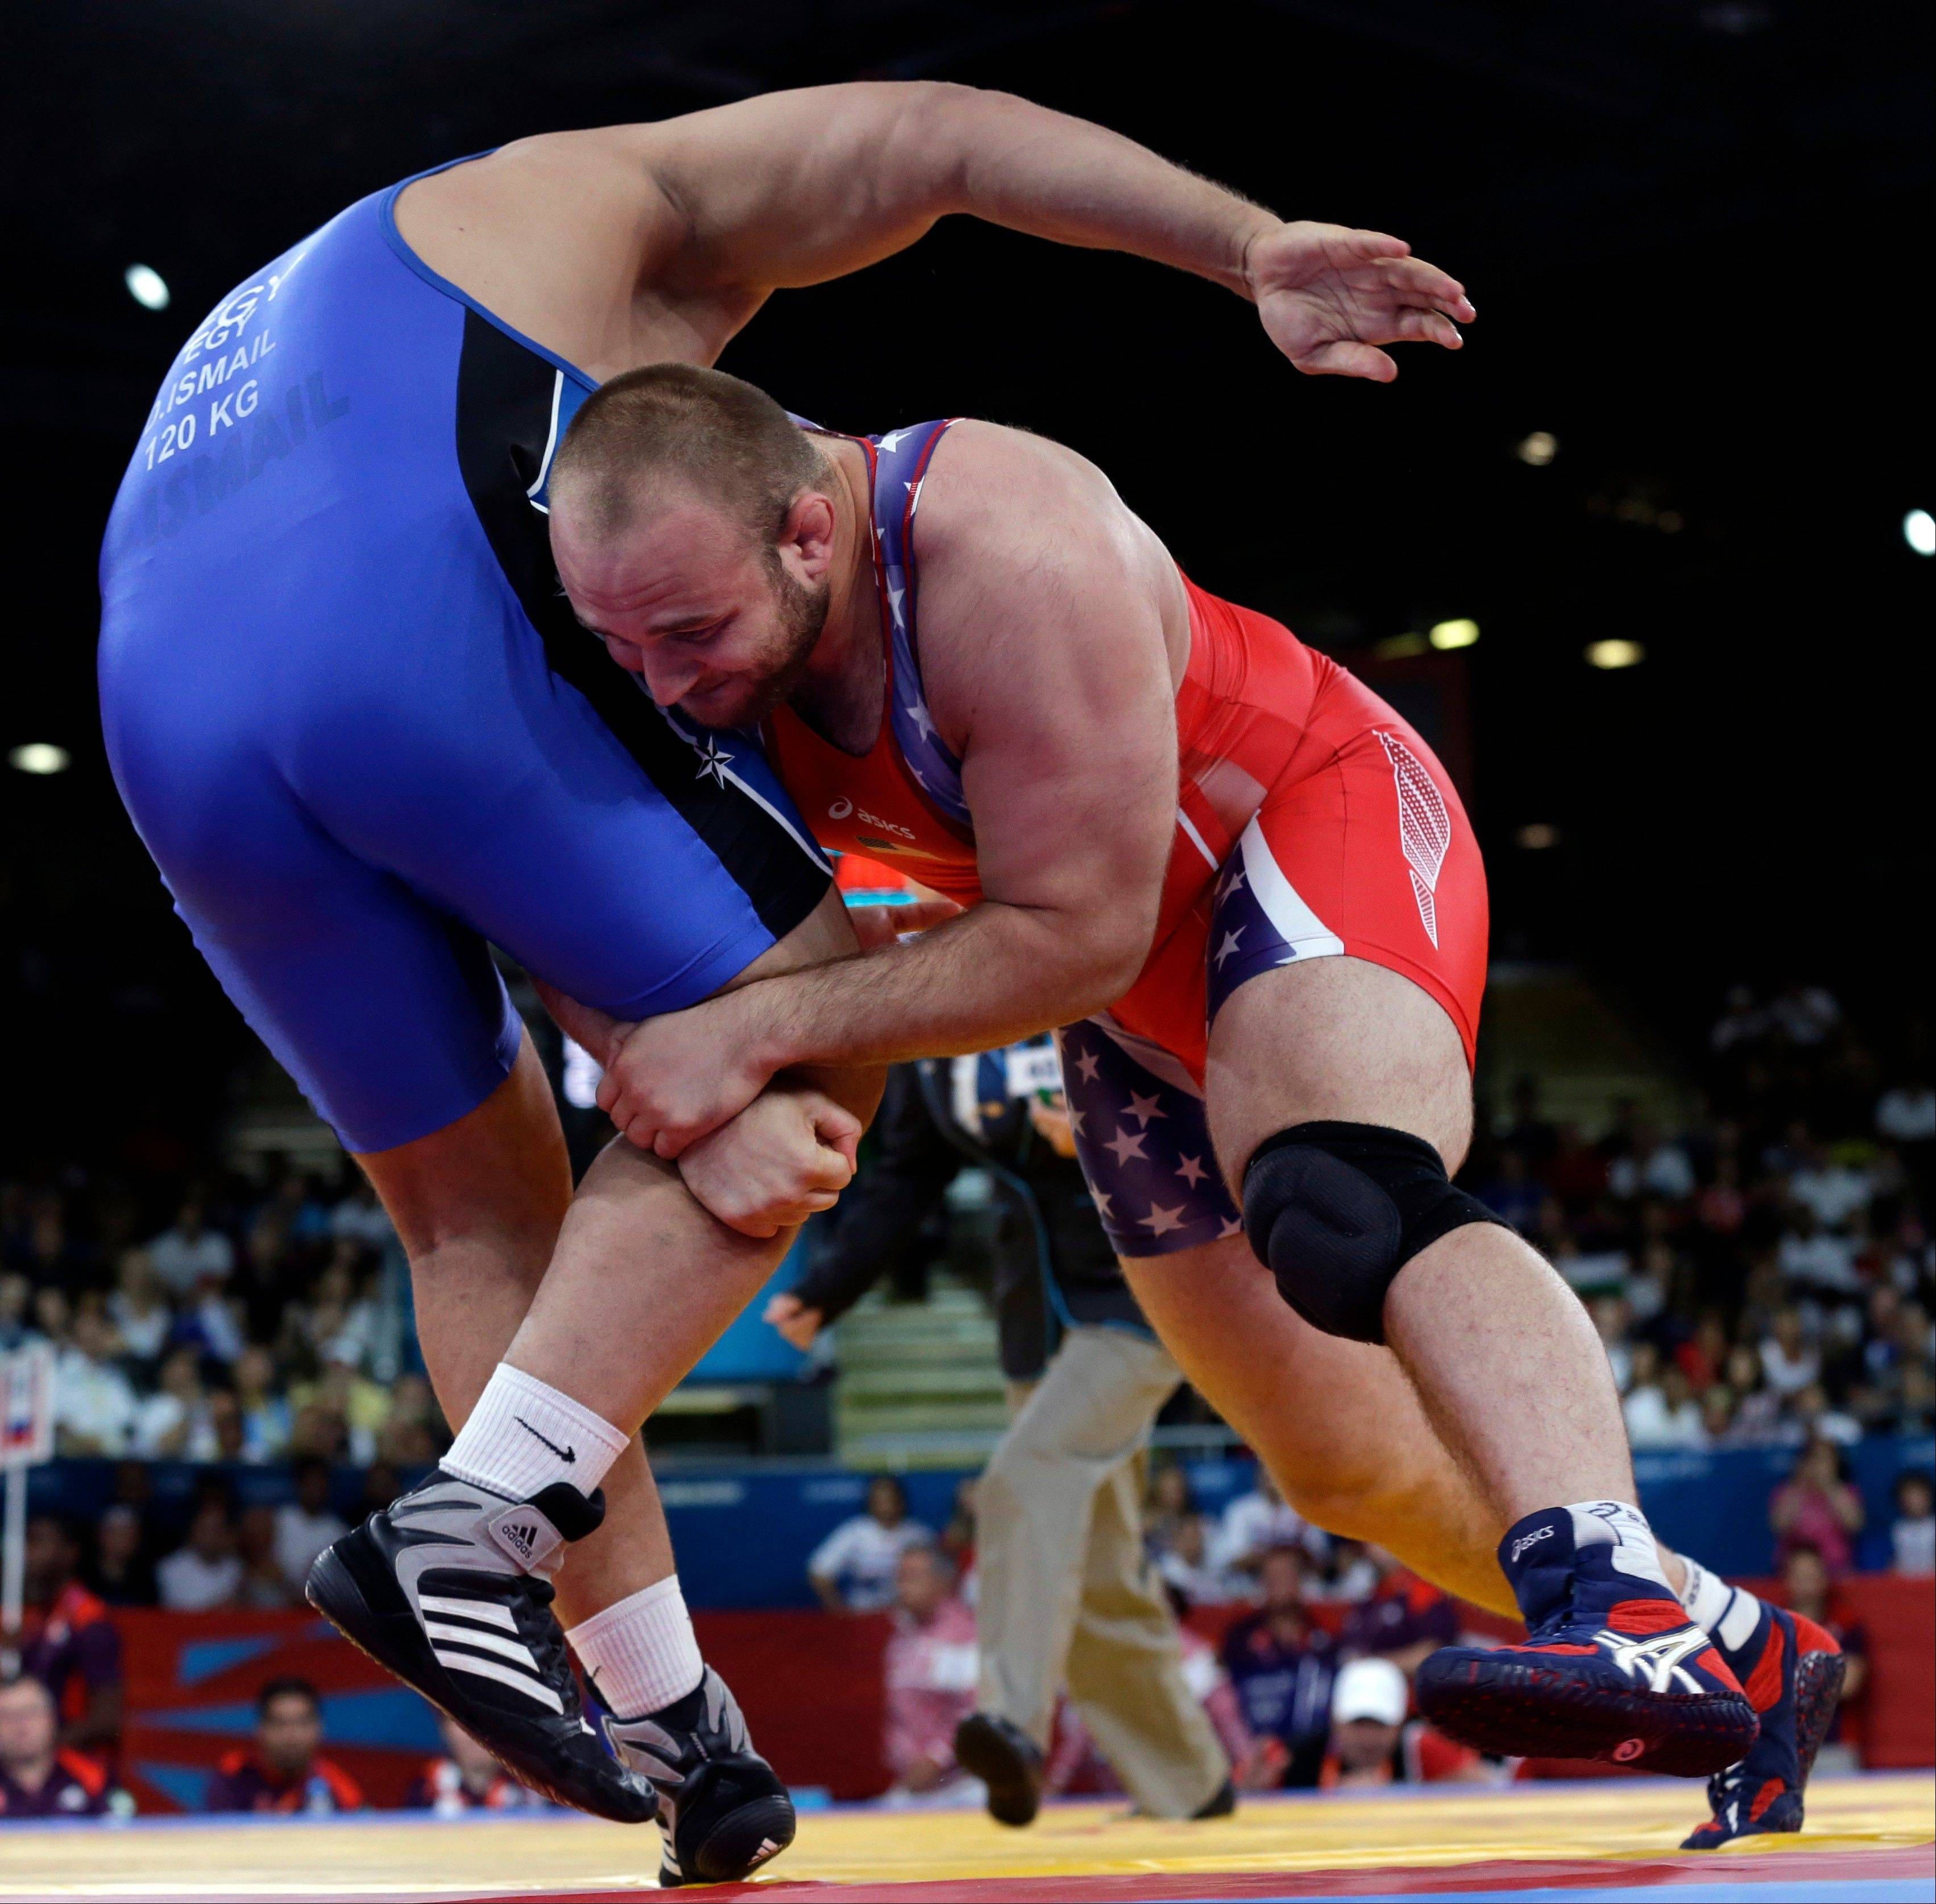 Tervel Ivaylov Dlagnev of the United States competes against Eldesoky Shaban of Egypt (in blue) during the men's 120-kg freestyle wrestling competition at the 2012 Summer Olympics, Saturday, Aug. 11, 2012, in London.